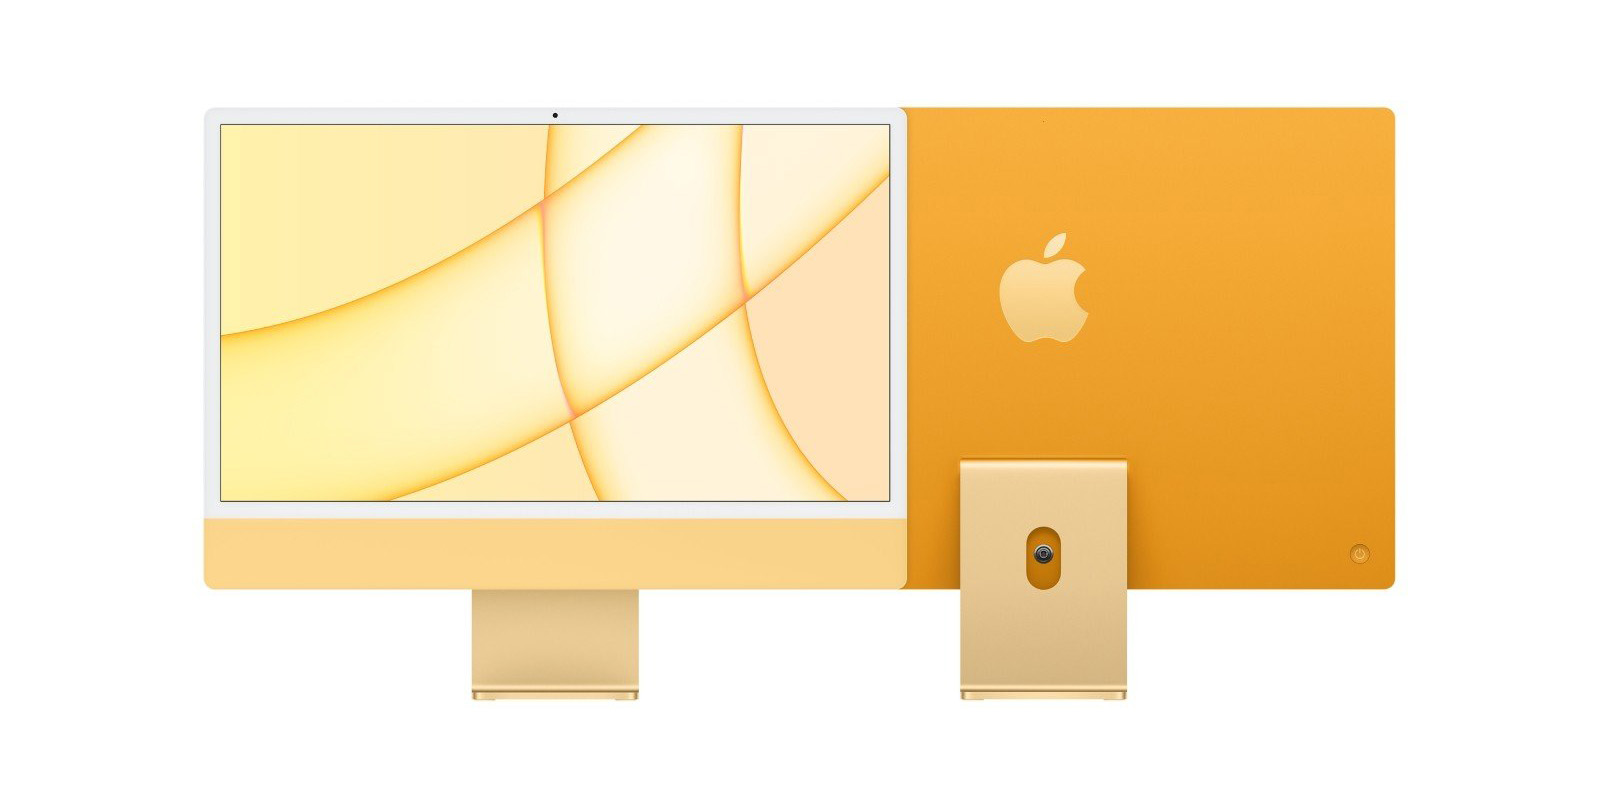 Yellow M1 iMac Gets Unboxed, Showing Its Color-Matched Accessories, Initial Performance Results and More